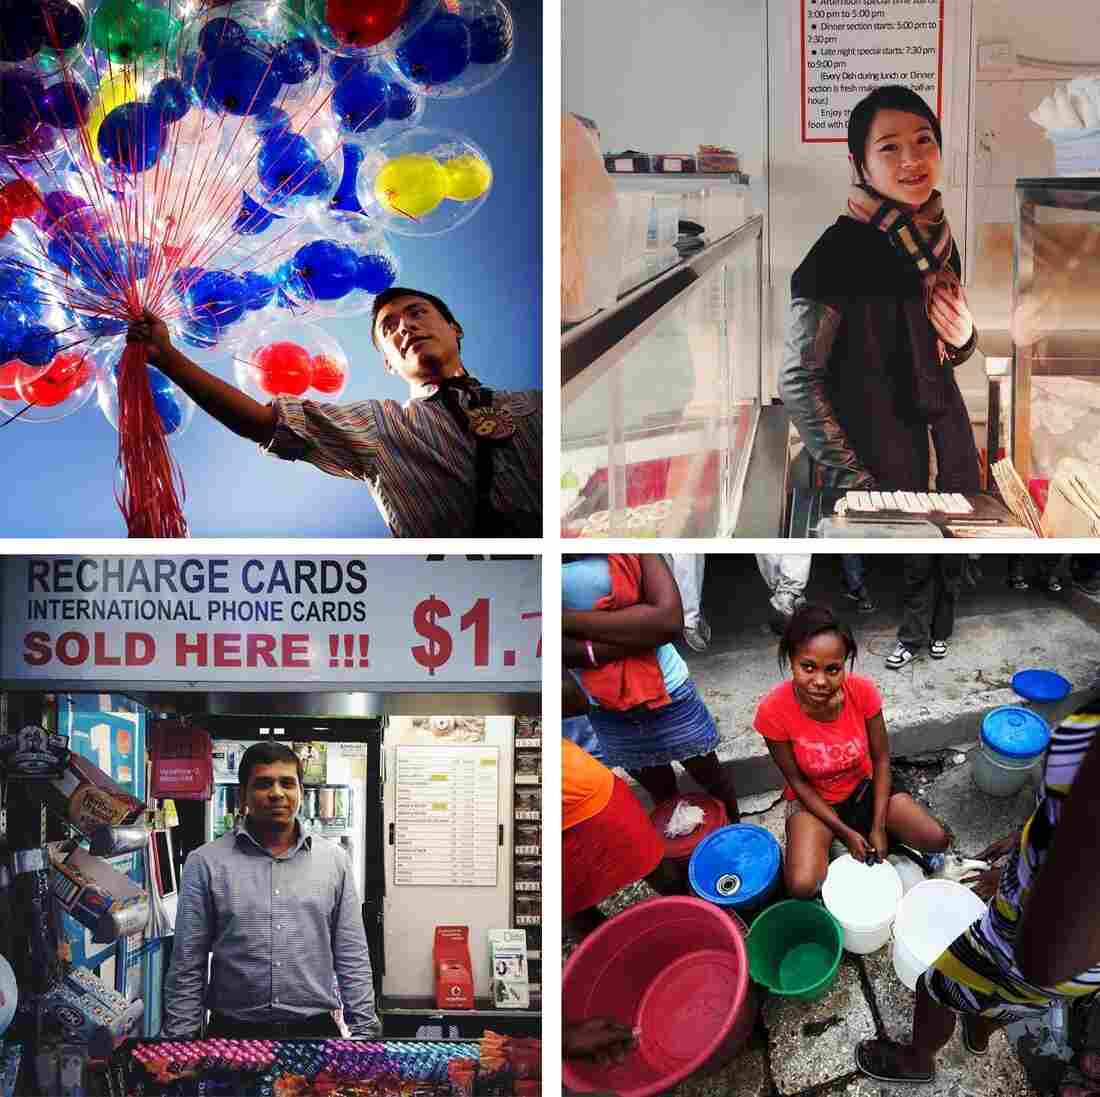 Clockwise from top left: Jonny, Mickey Mouse balloon vendor at Disneyland in Anaheim, Calif. (Sheldon Serkin/@shelserkin); Ting, clerk at Dong Xing Chinese and Japanese Takeaway; Marlene Lucien, Port-au-Prince, Haiti (John Poole/NPR/@johnwpoole); Hussain, newsstand kiosk vendor, Melbourne, Australia (Michael Baranovic/@mishobaranovic)